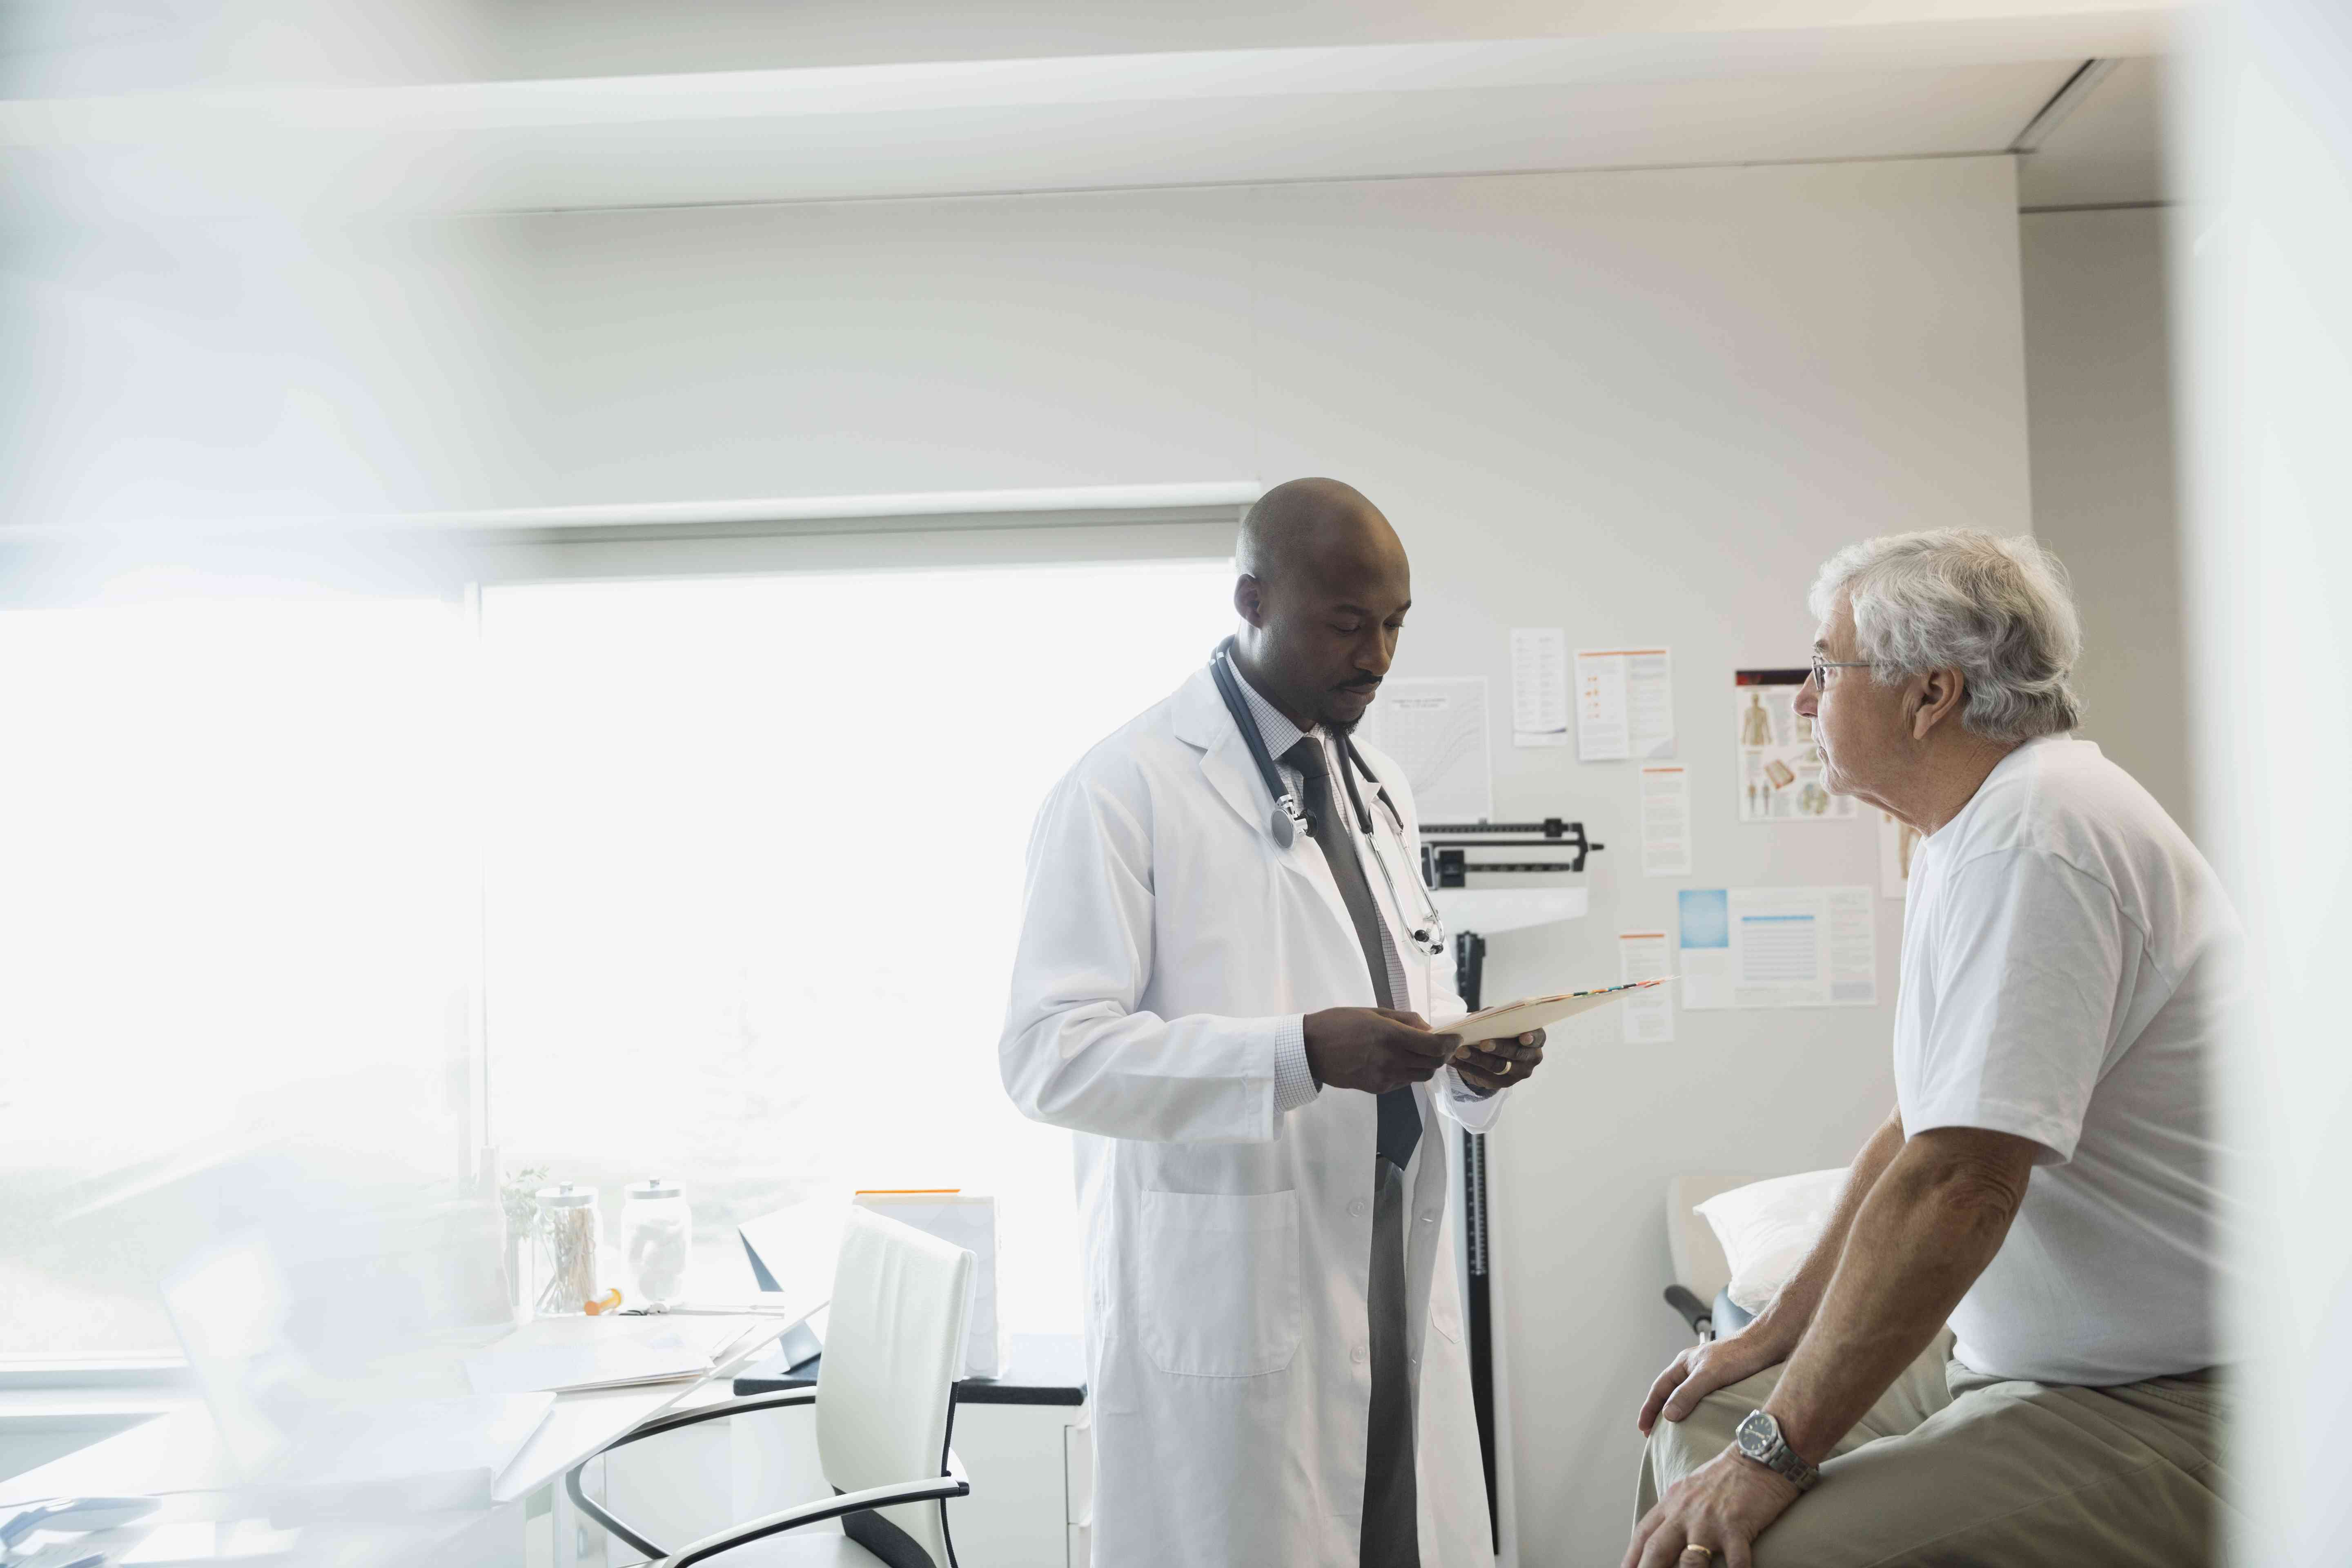 Doctor reviewing medical chart with older man